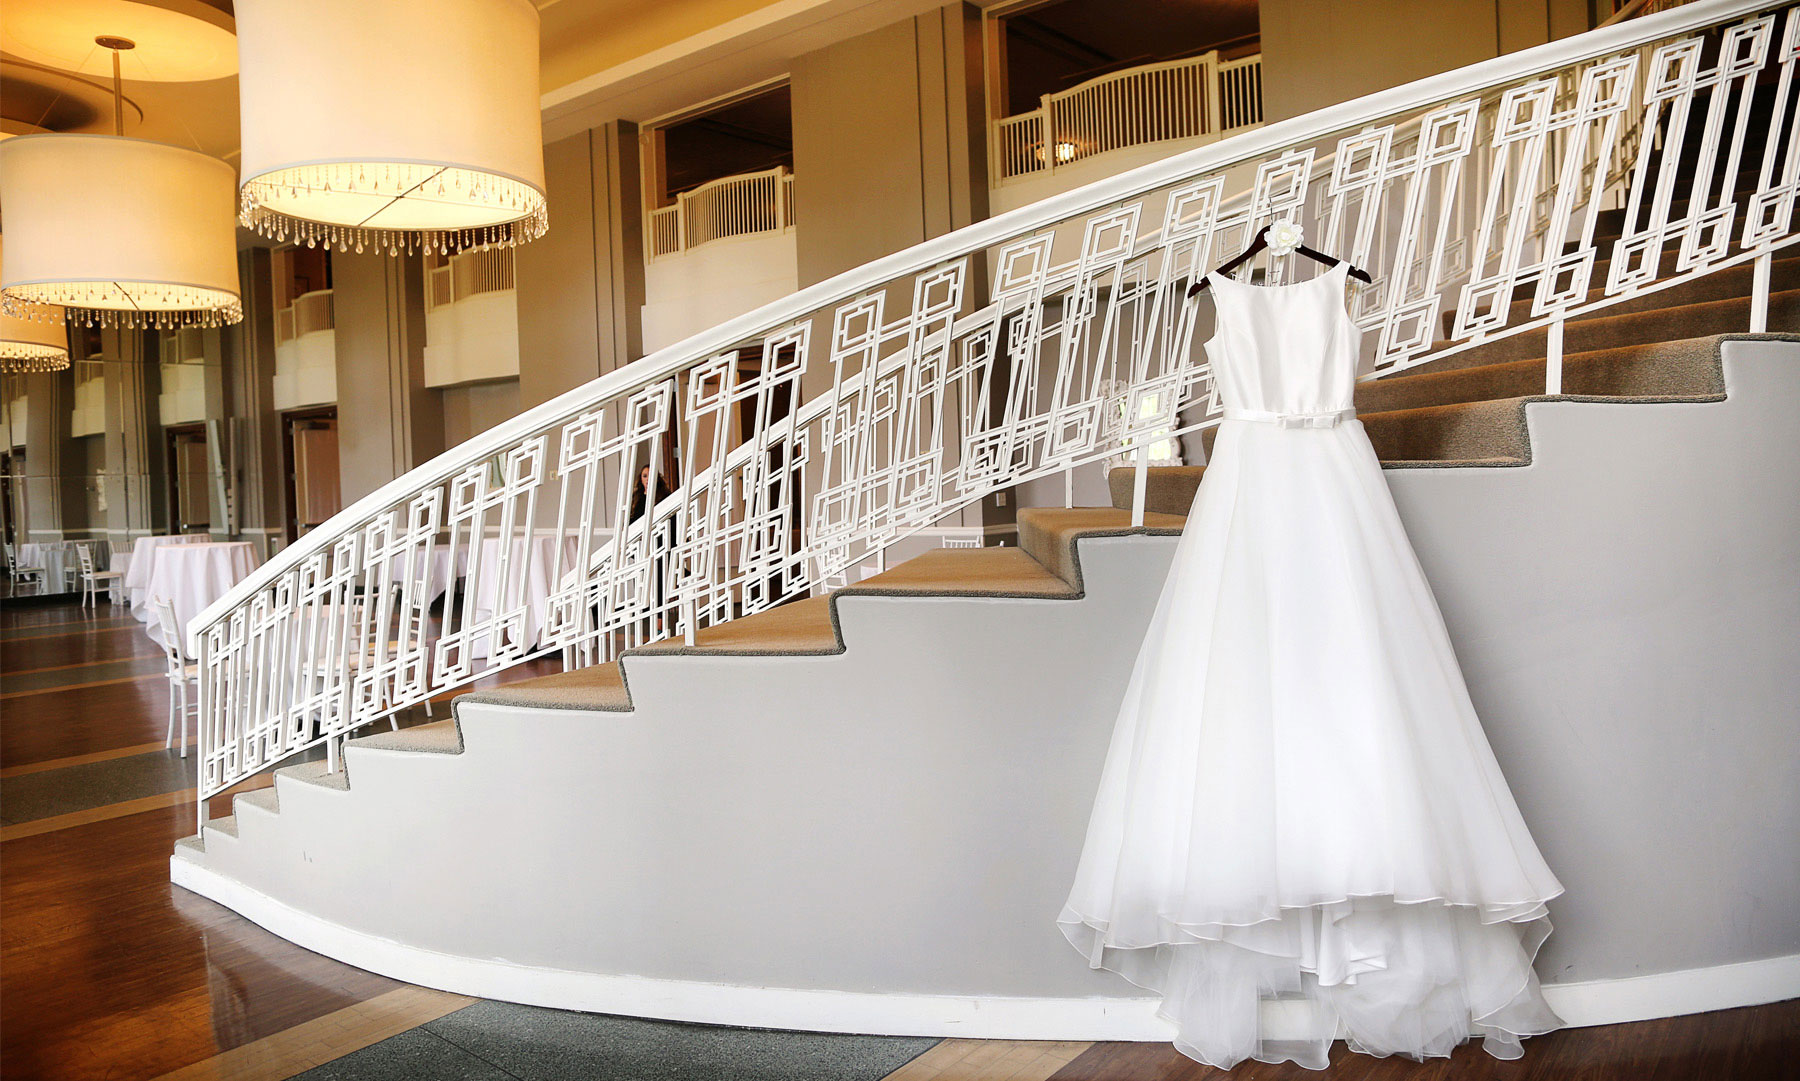 01-Minneapolis-Minnesota-Wedding-Photographer-by-Andrew-Vick-Photography-Fall-Autumn-Calhoun-Beach-Club-Getting-Ready-Dress-Staircase-Stairs-Kristy-and-Jack.jpg